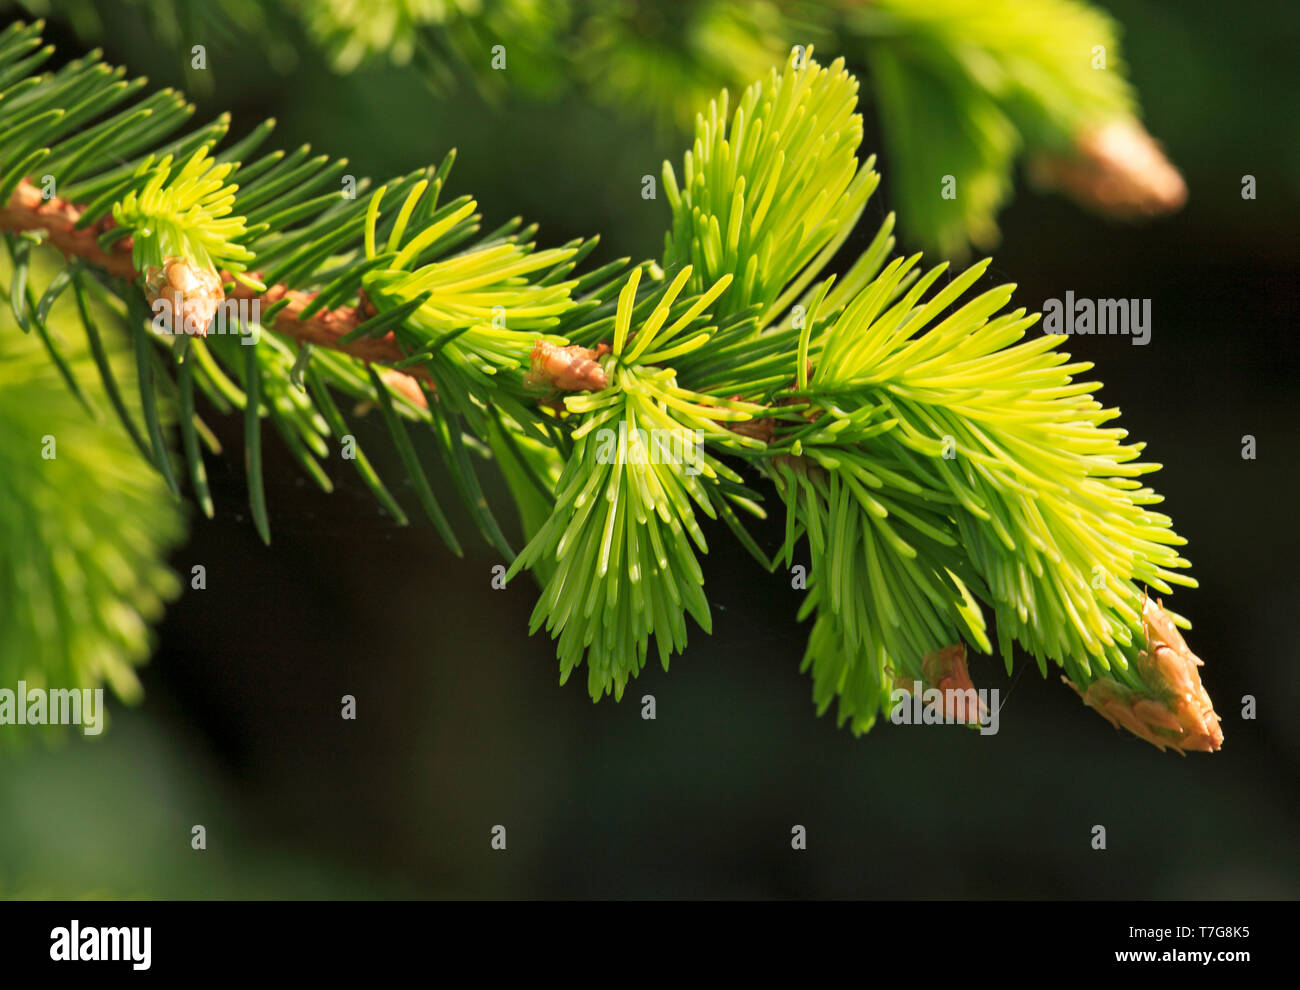 Expanding pale-green shoots from reddish-brown buds of Norway Spruce, Picea abies, in spring. - Stock Image